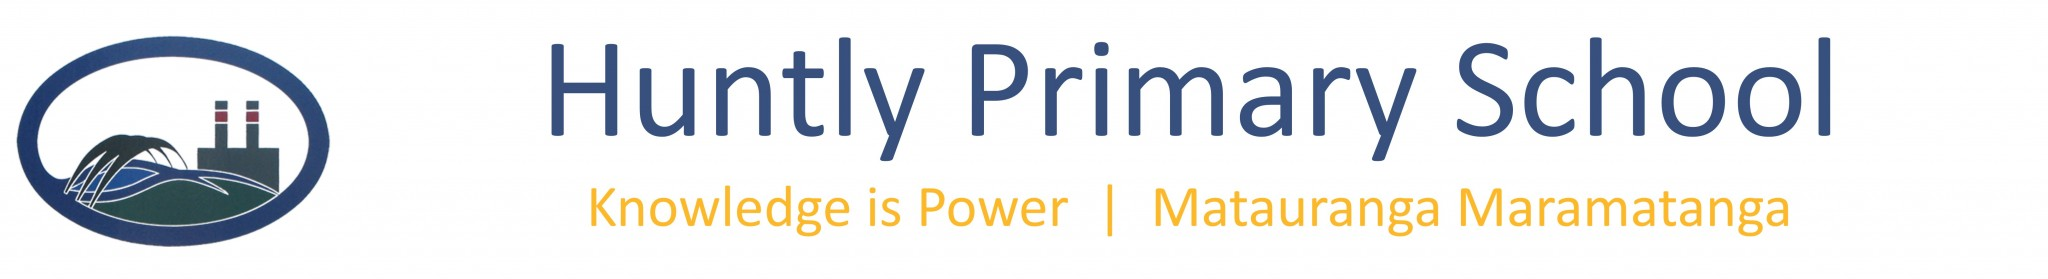 Huntly Primary School Logo